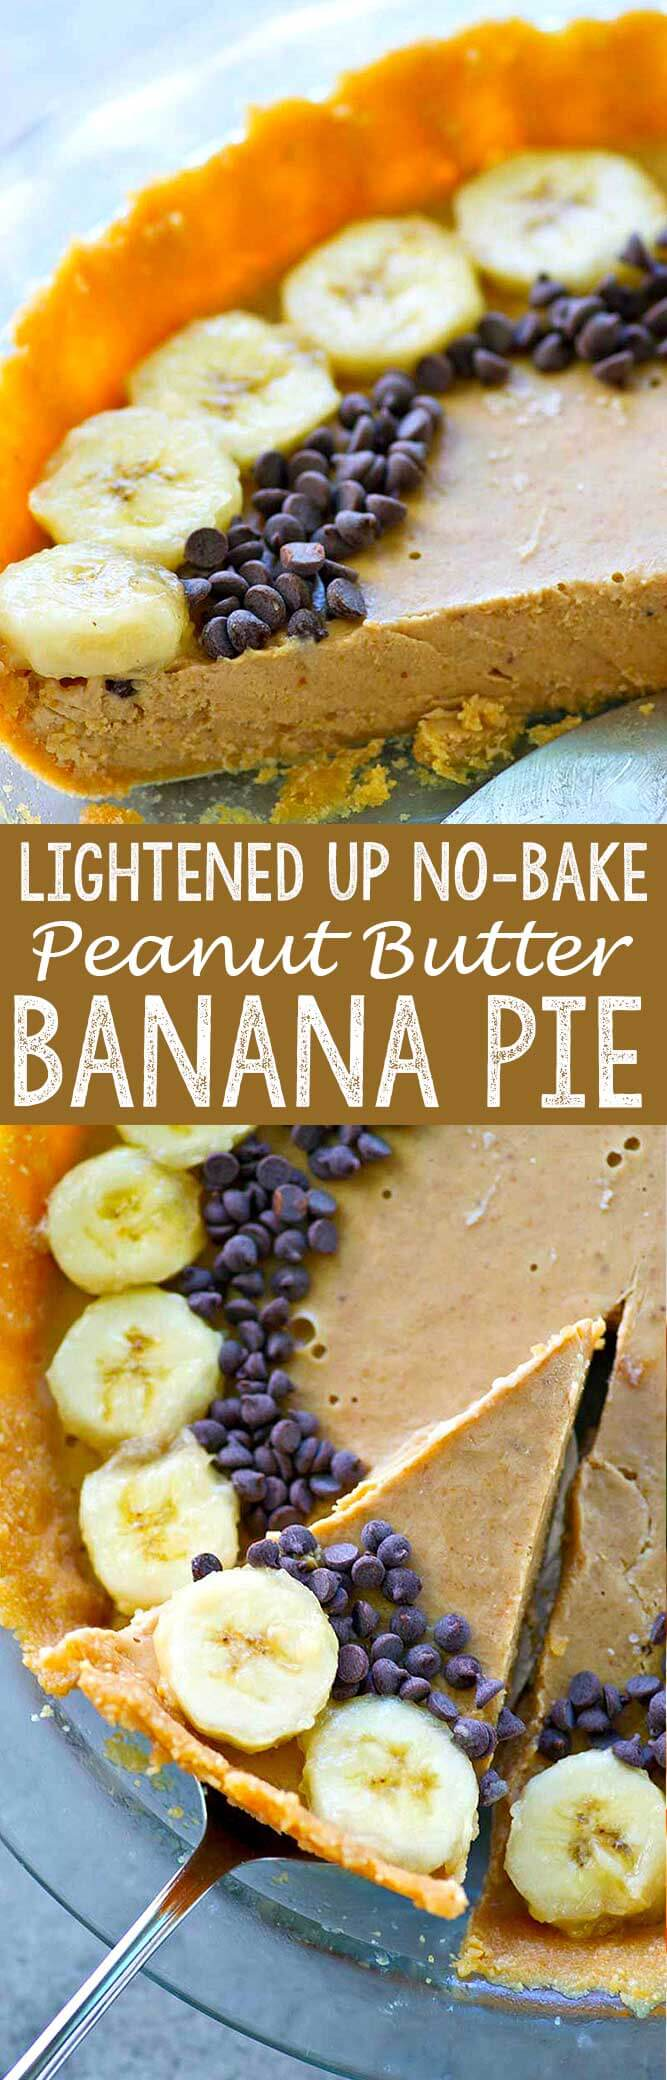 Lighter no bake peanut butter banana pie is a quick, easy, delicious dessert option!